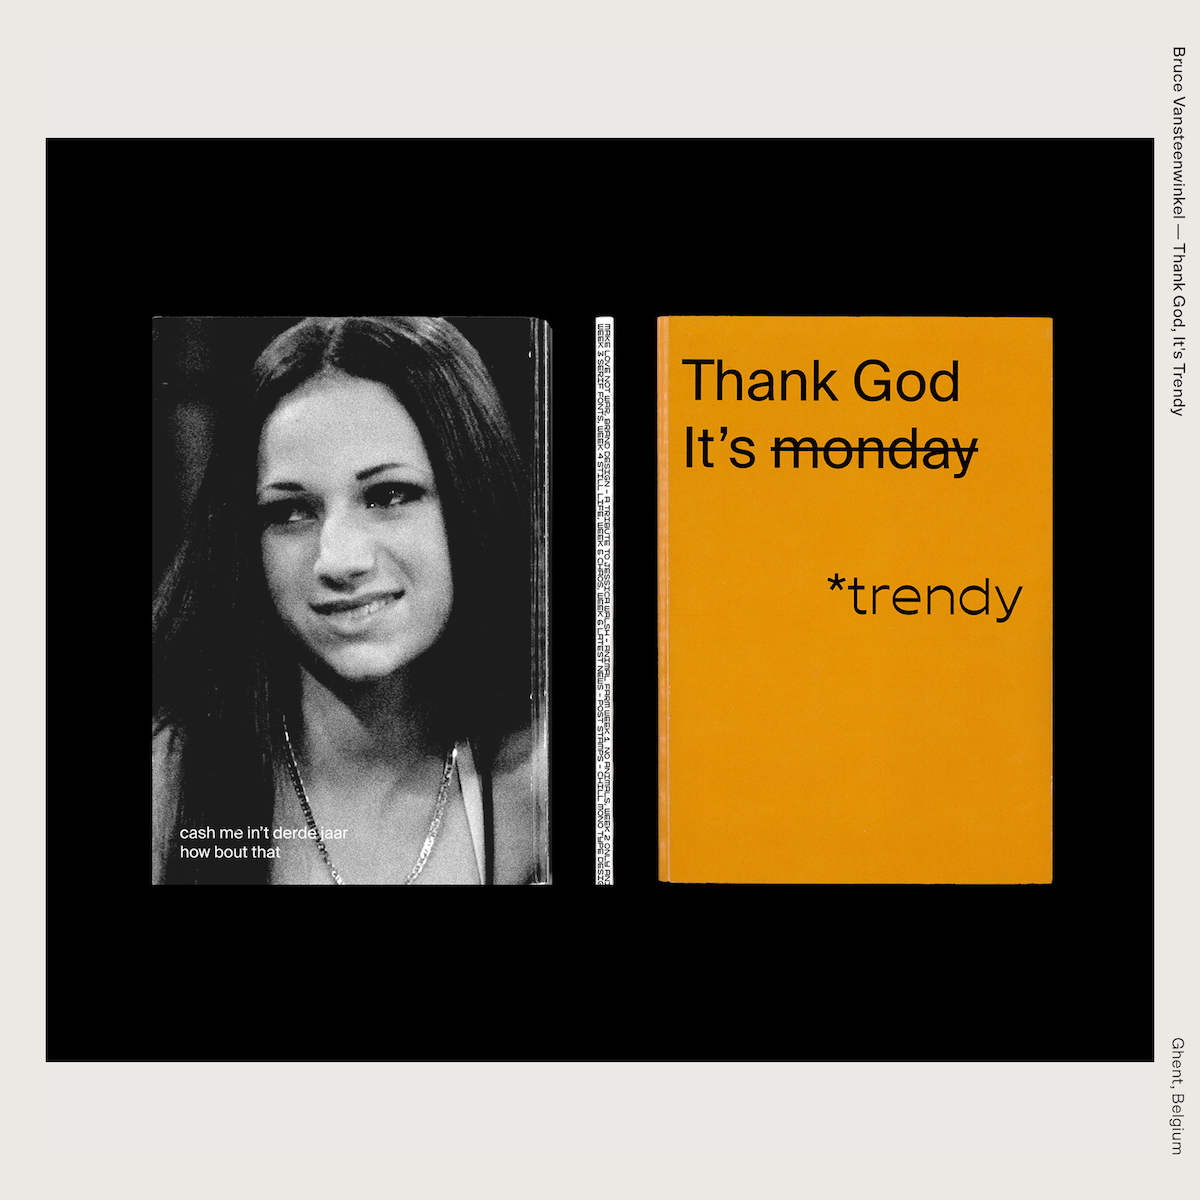 Bruce Vansteenwinkel — Thank God, It's Trendy